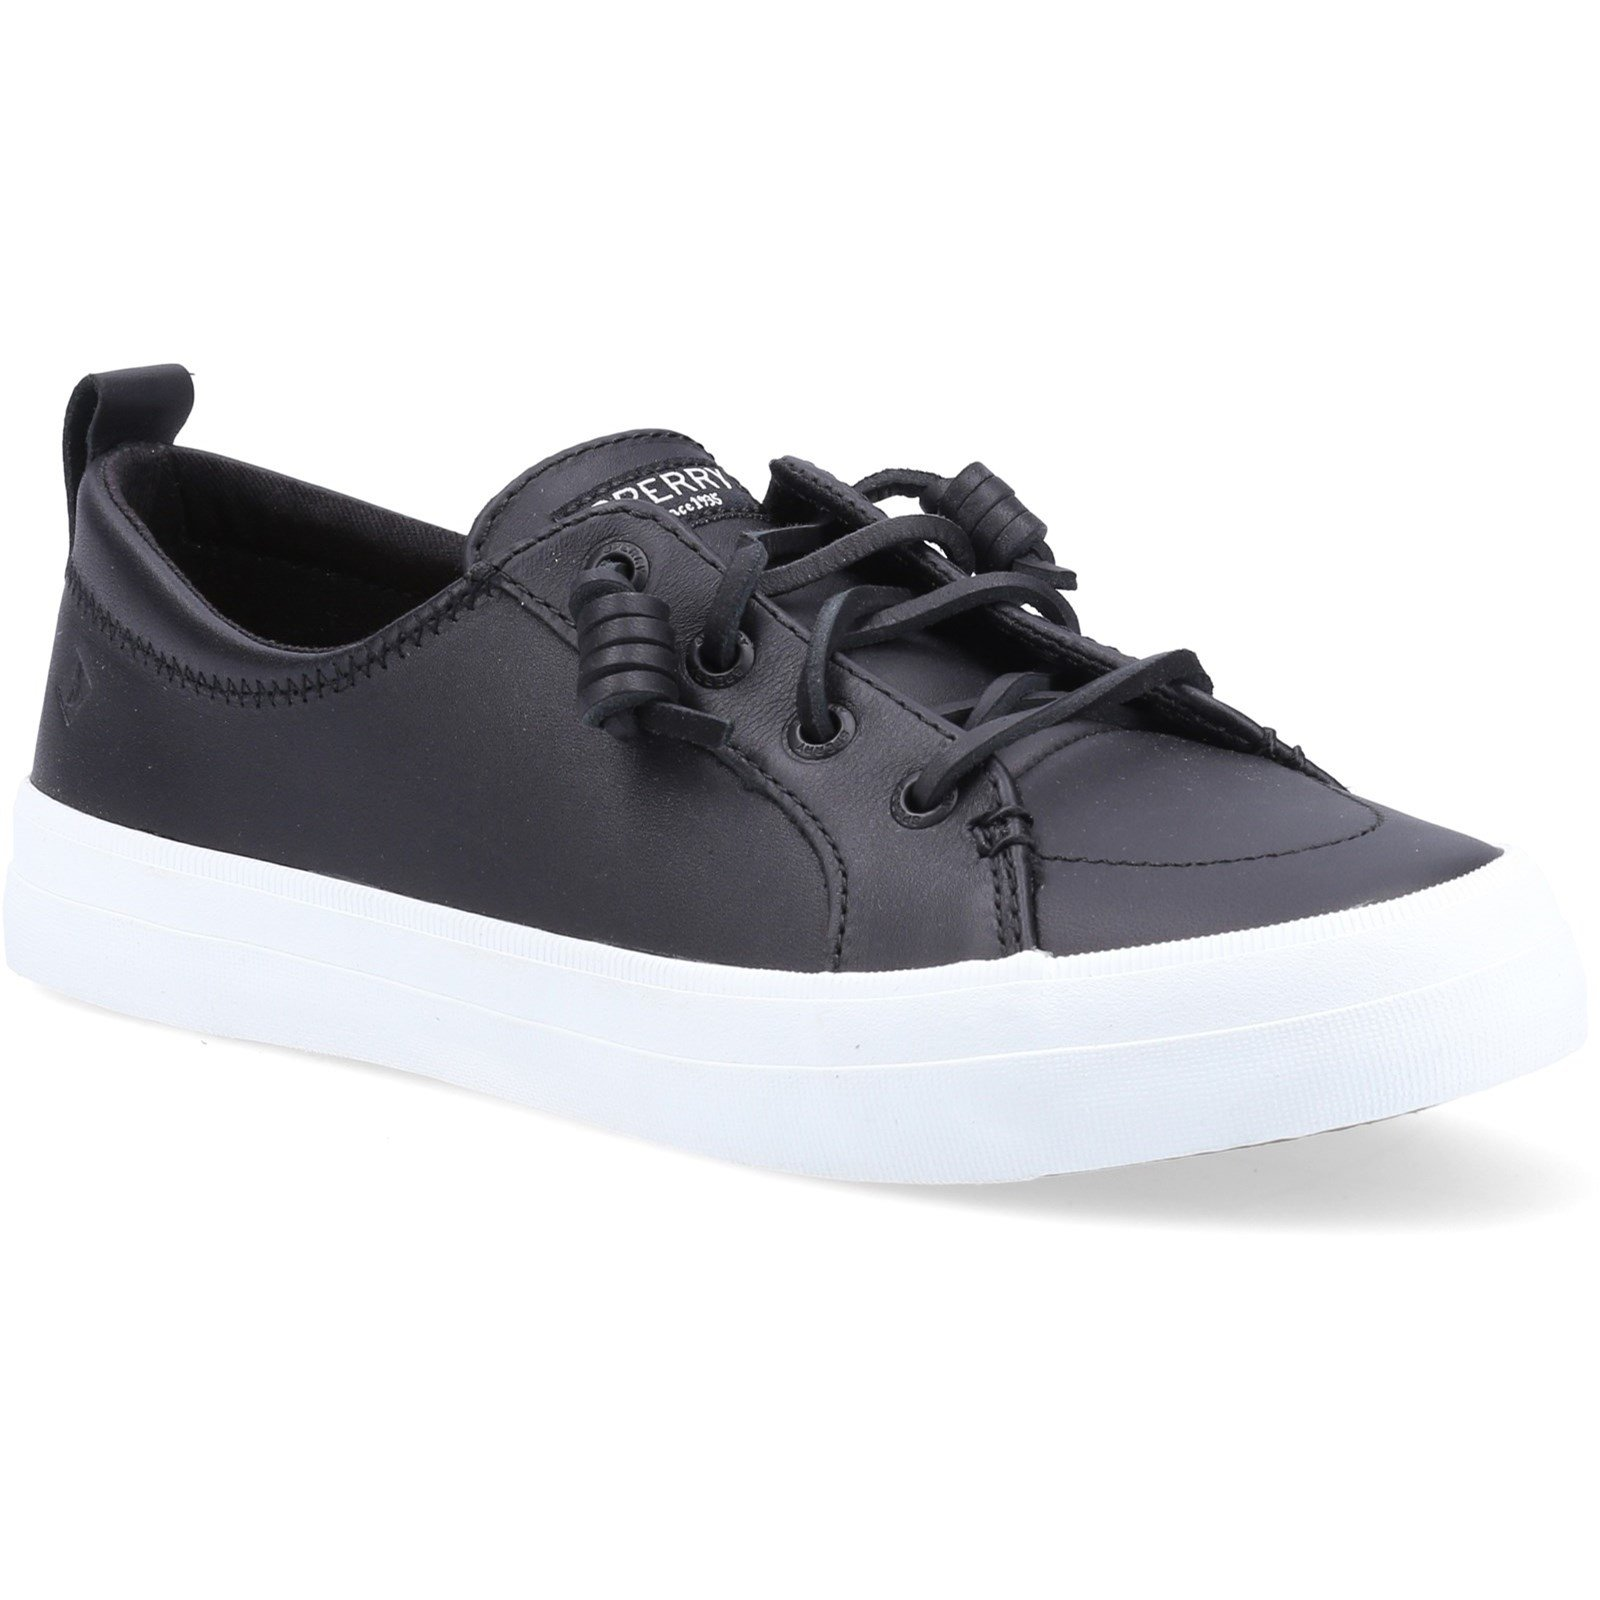 Sperry Women's Crest Vibe Leather Trainers Black 32404 - Black 7